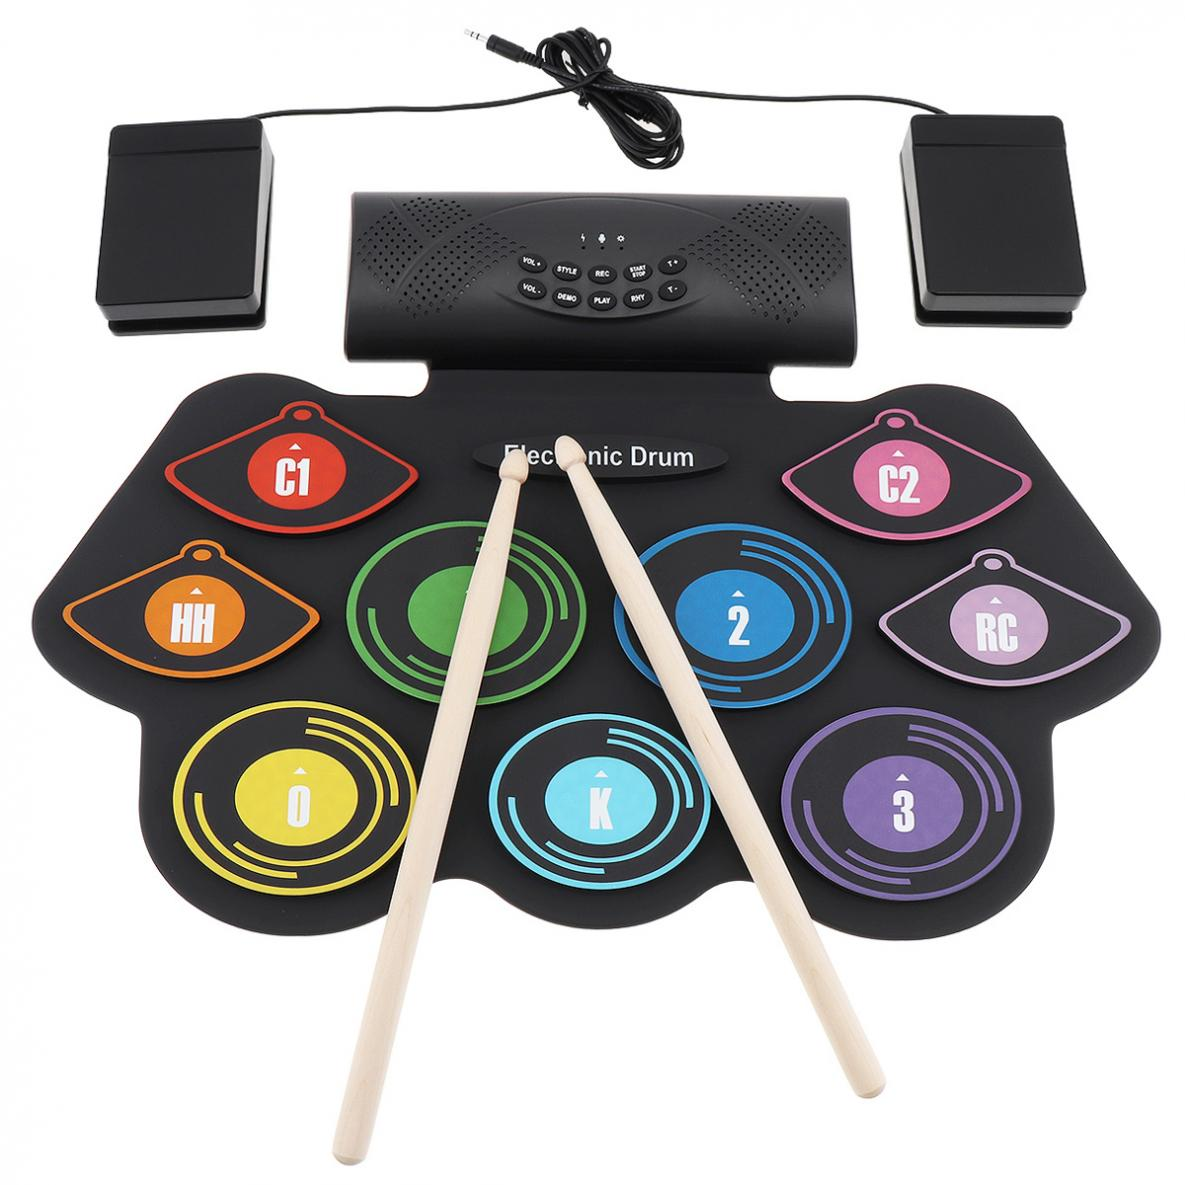 9 Pads Electronic Roll up Silicone Drum Double Speakers Electric Drum Kit Support USB MIDI with Drumsticks and Sustain Pedal enlarge